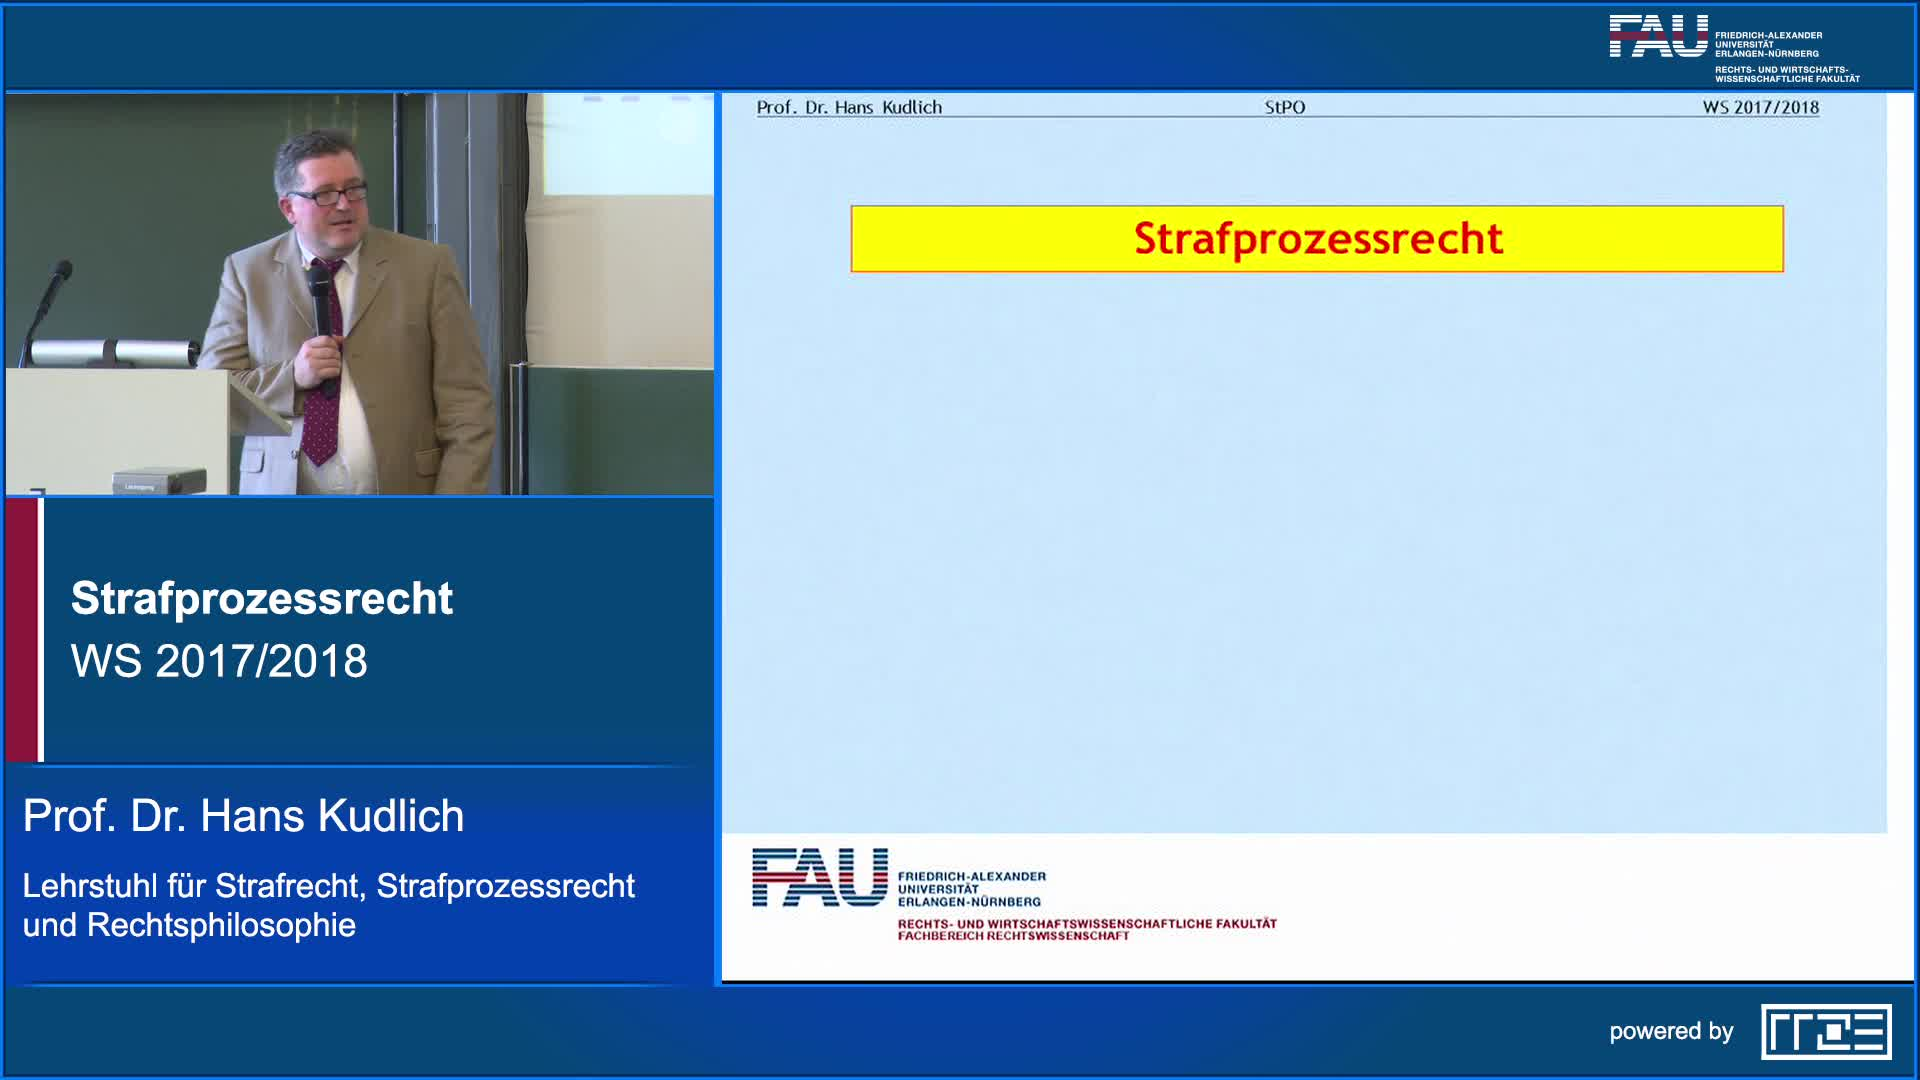 Strafprozessrecht preview image